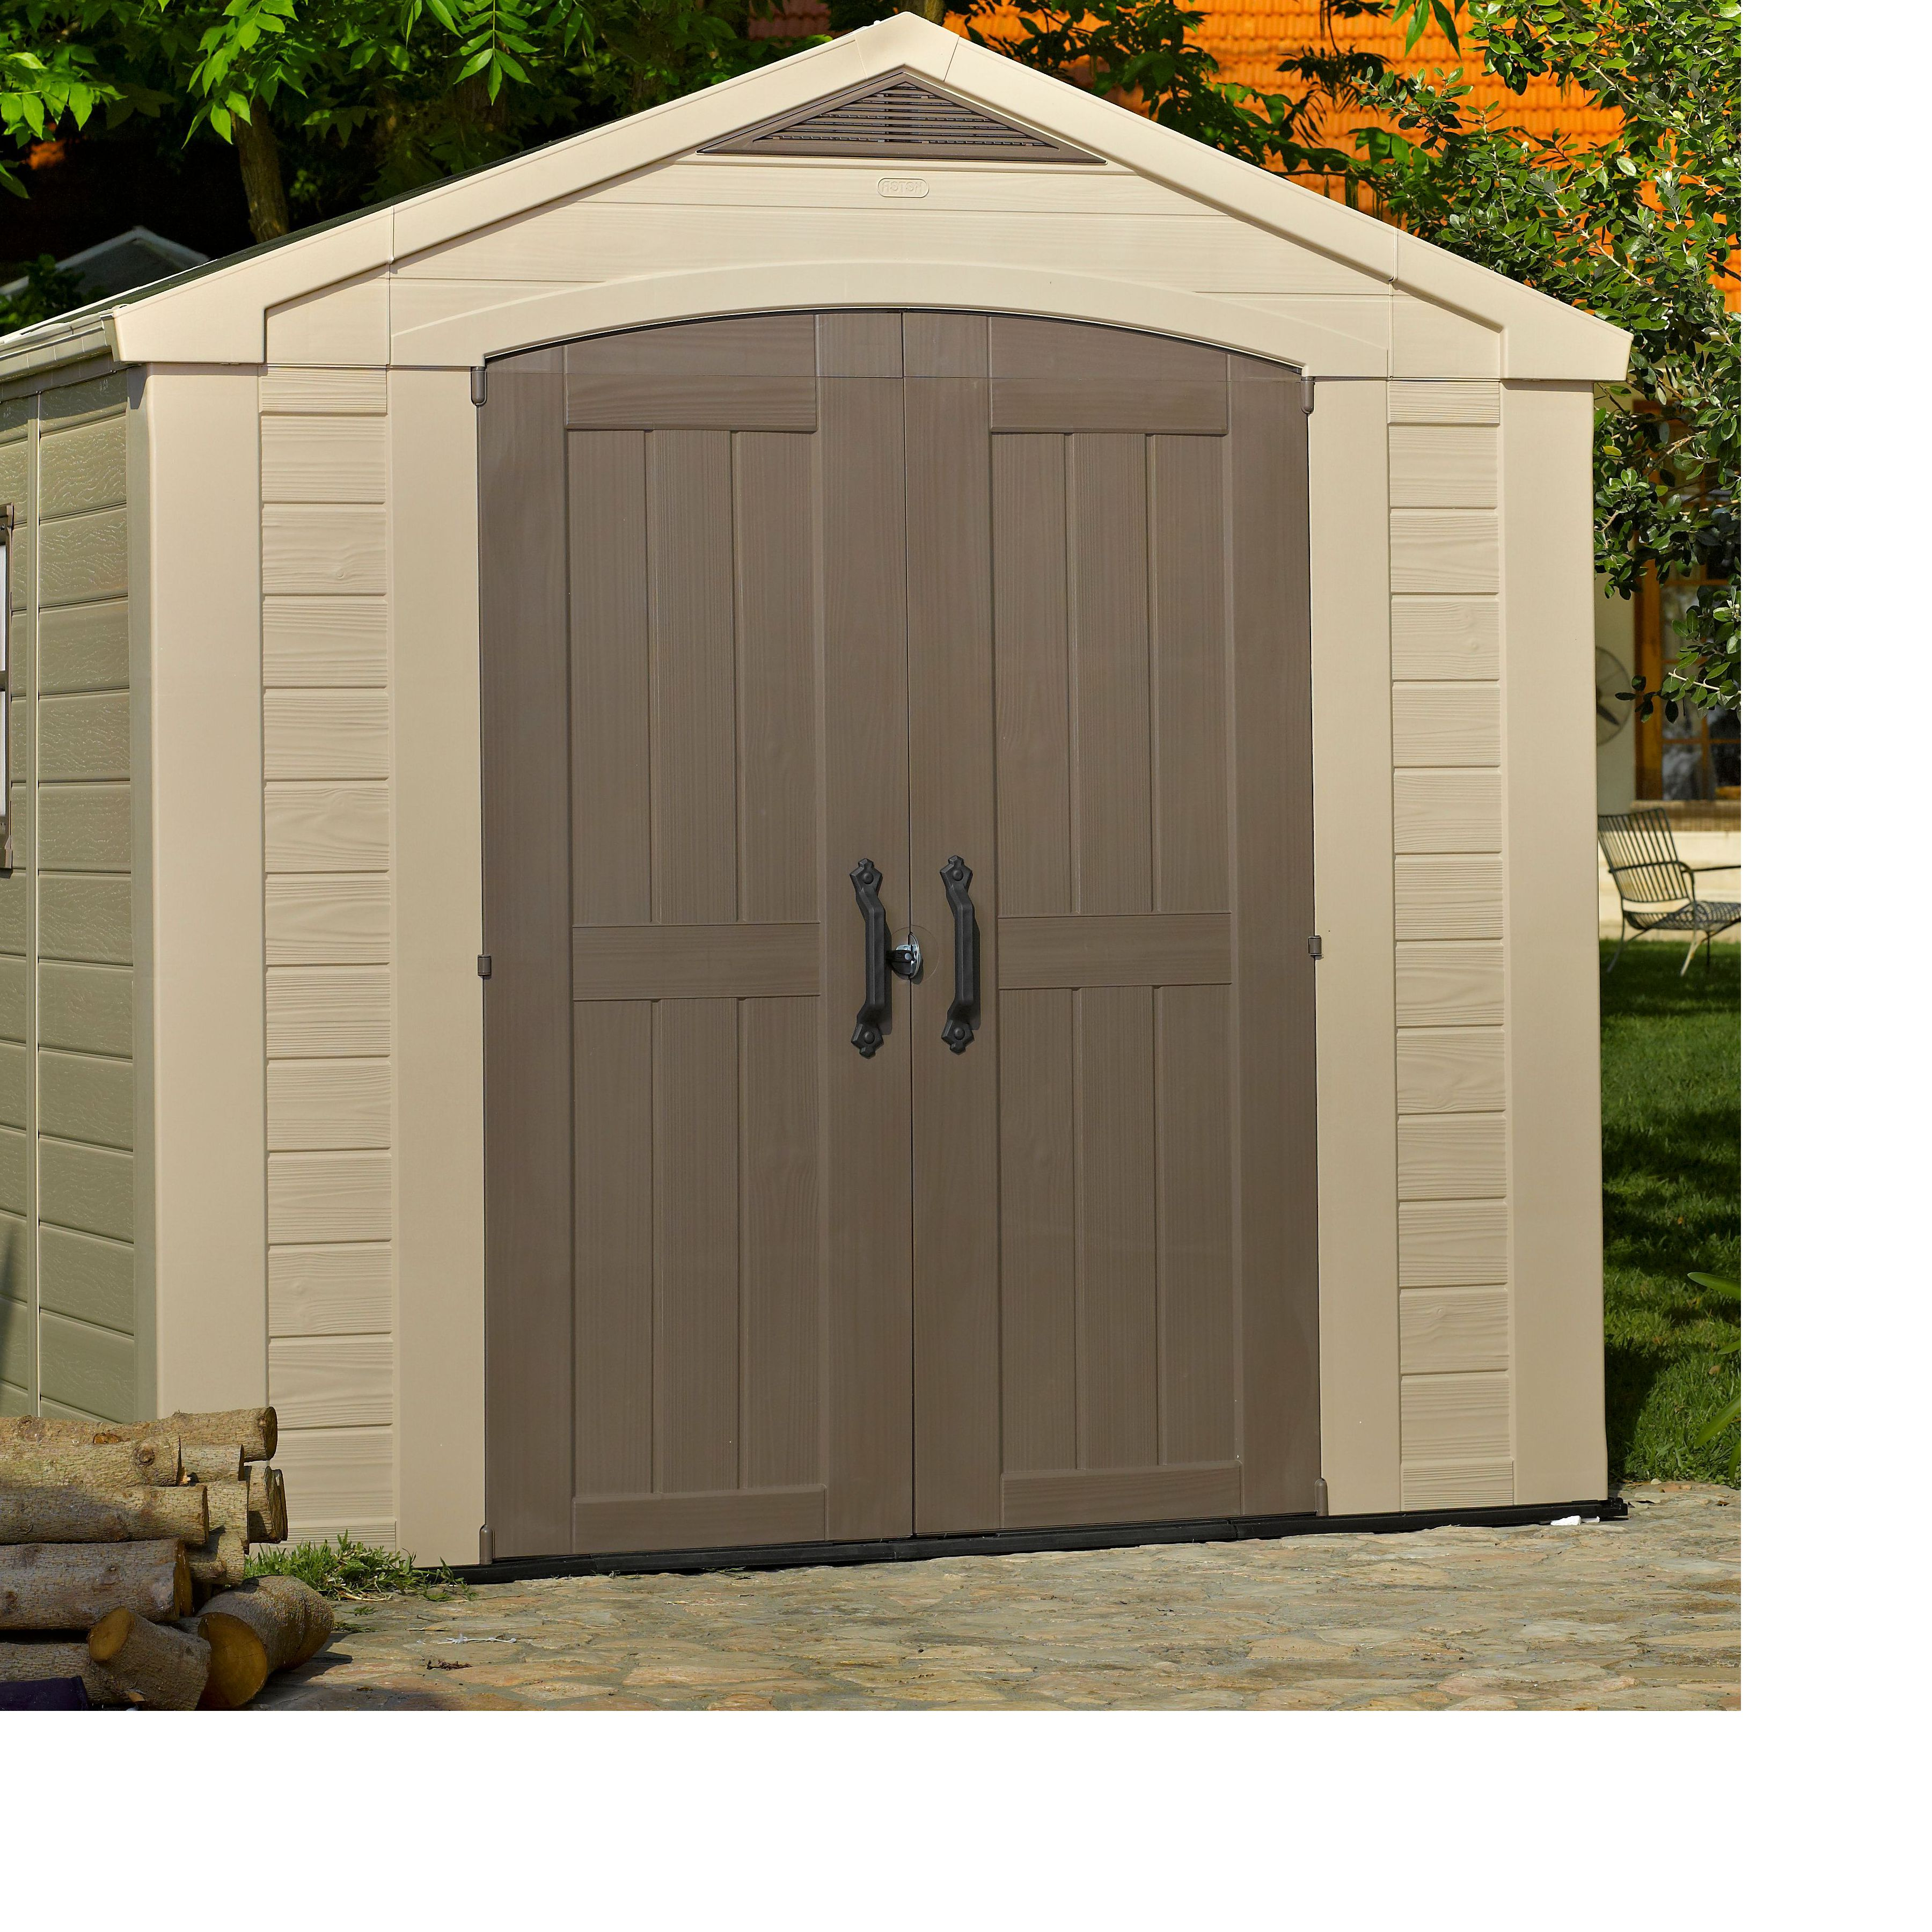 Garden Sheds B Q 8x6 factor apex plastic shed | departments | diy at b&q